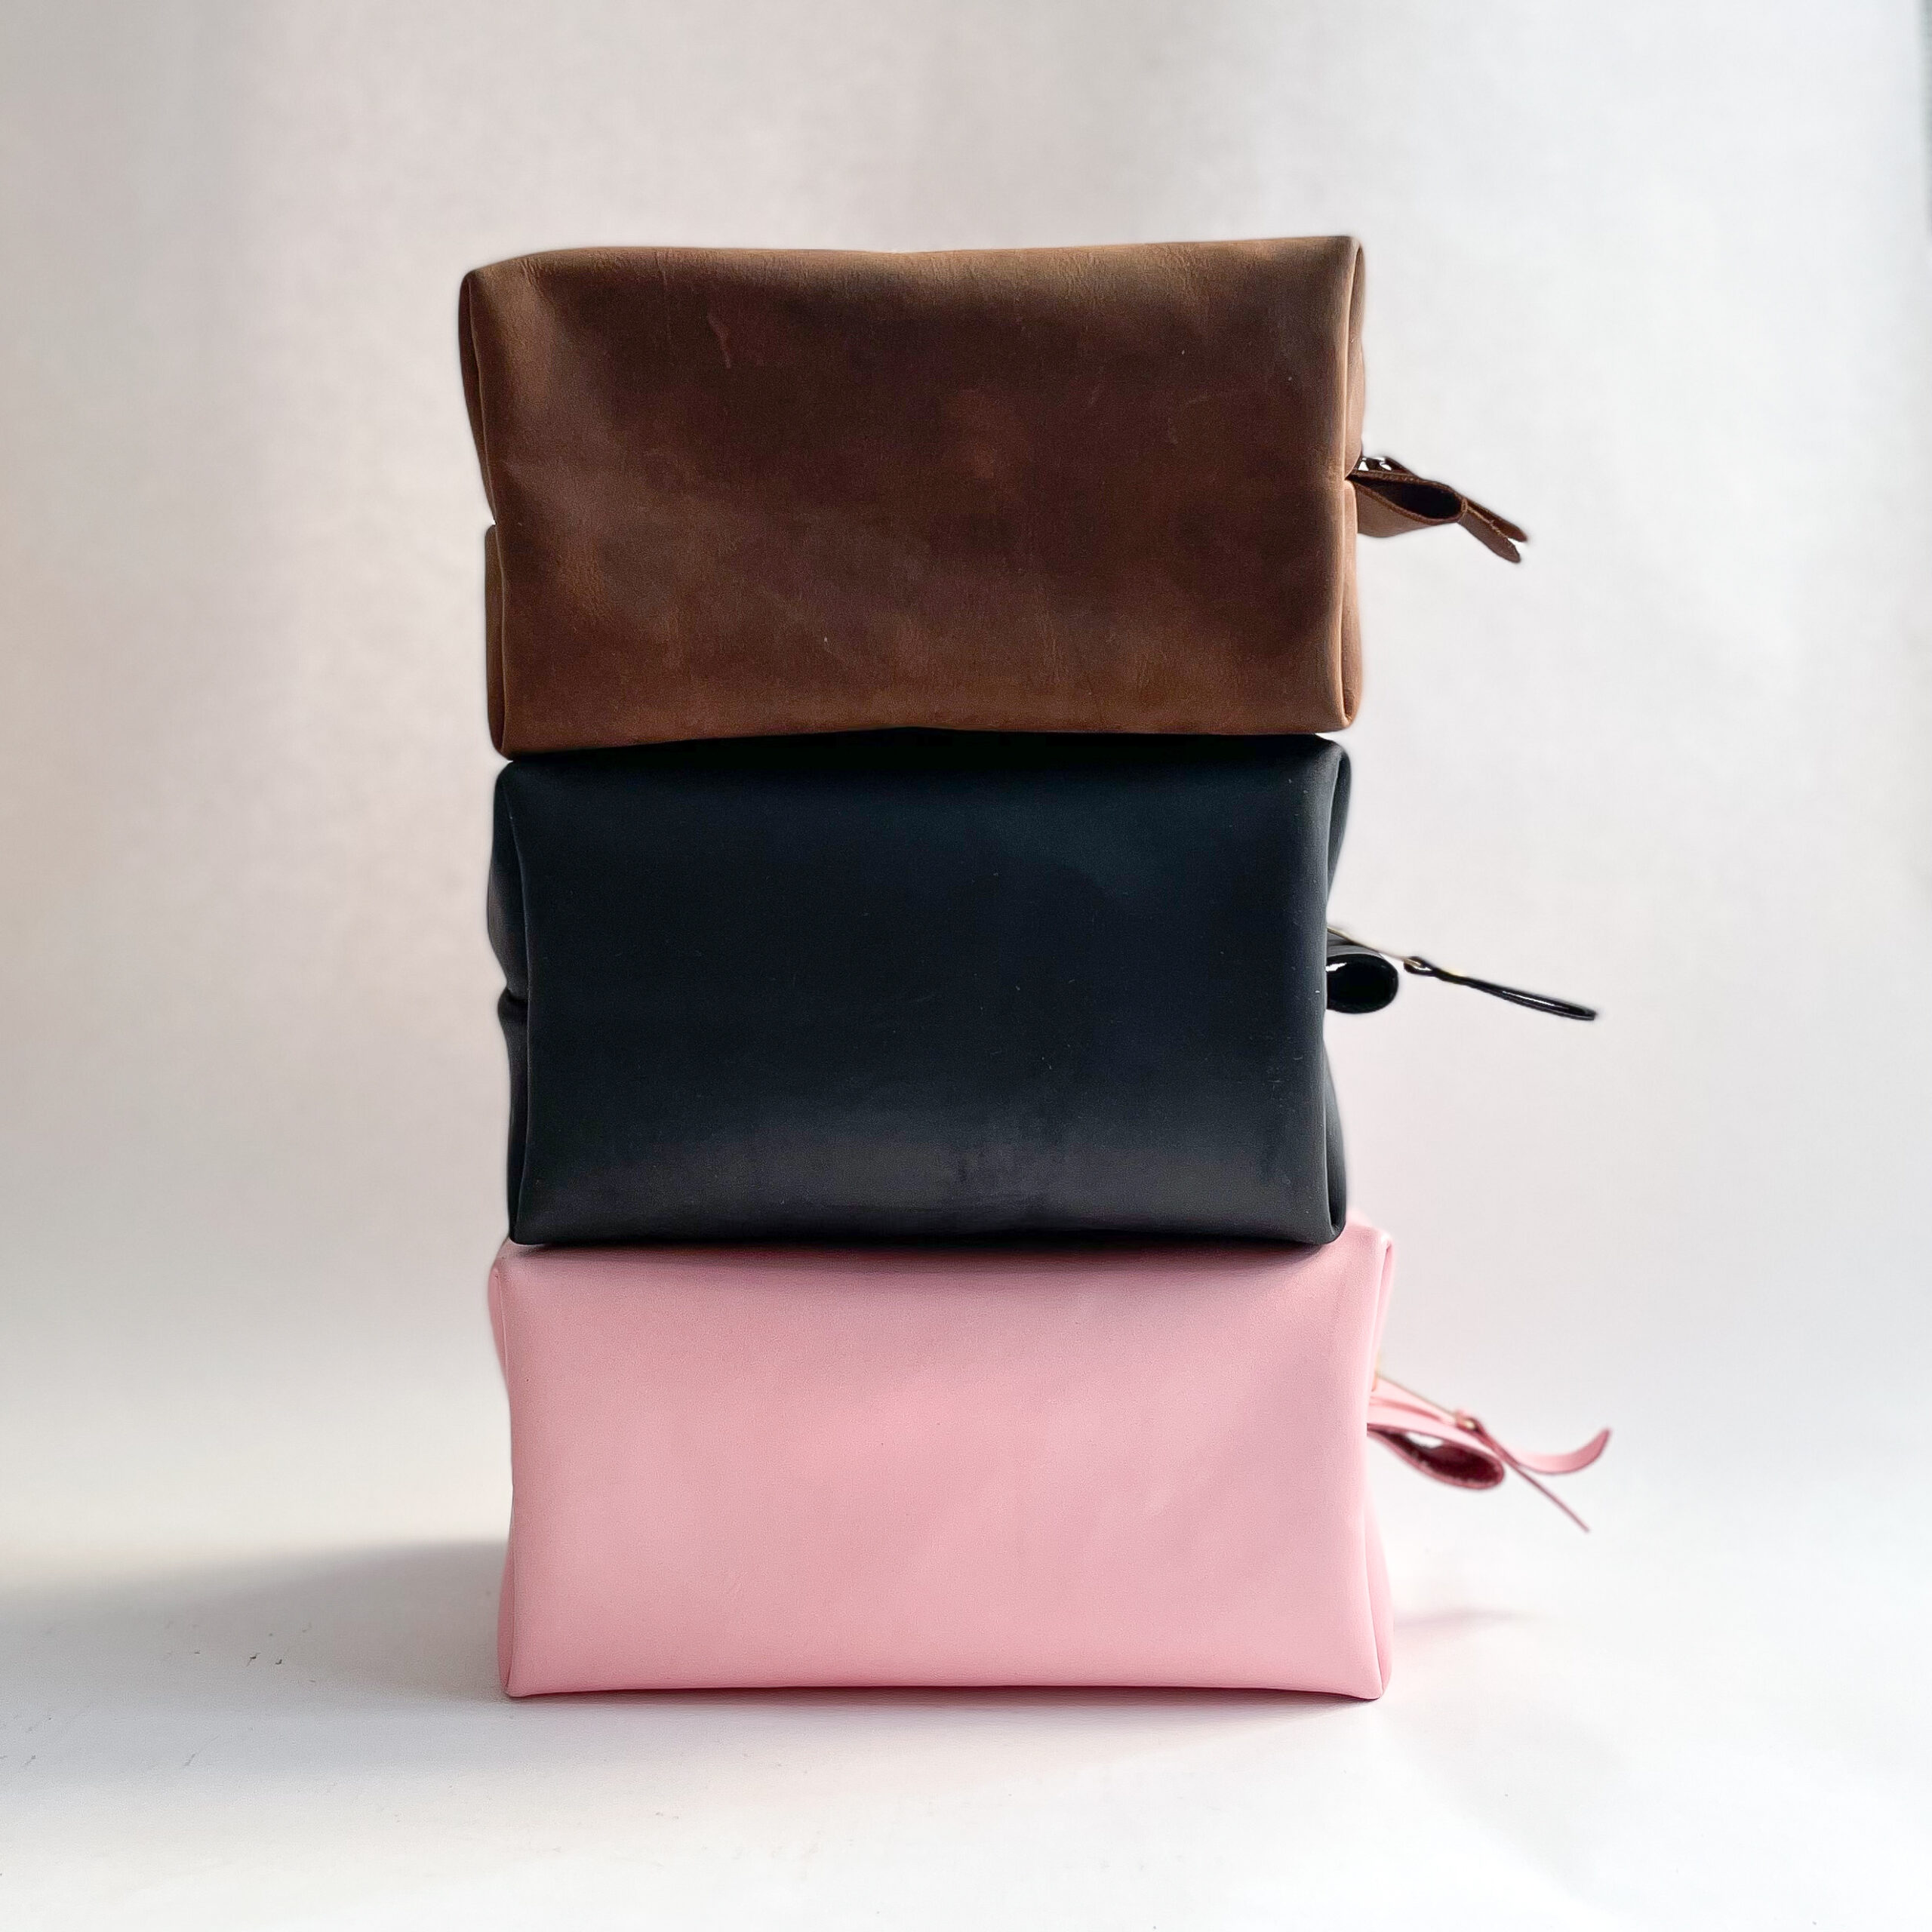 A brown dopp kit, a black dopp kit and a pink dopp kit, sitting in a stack, from the side